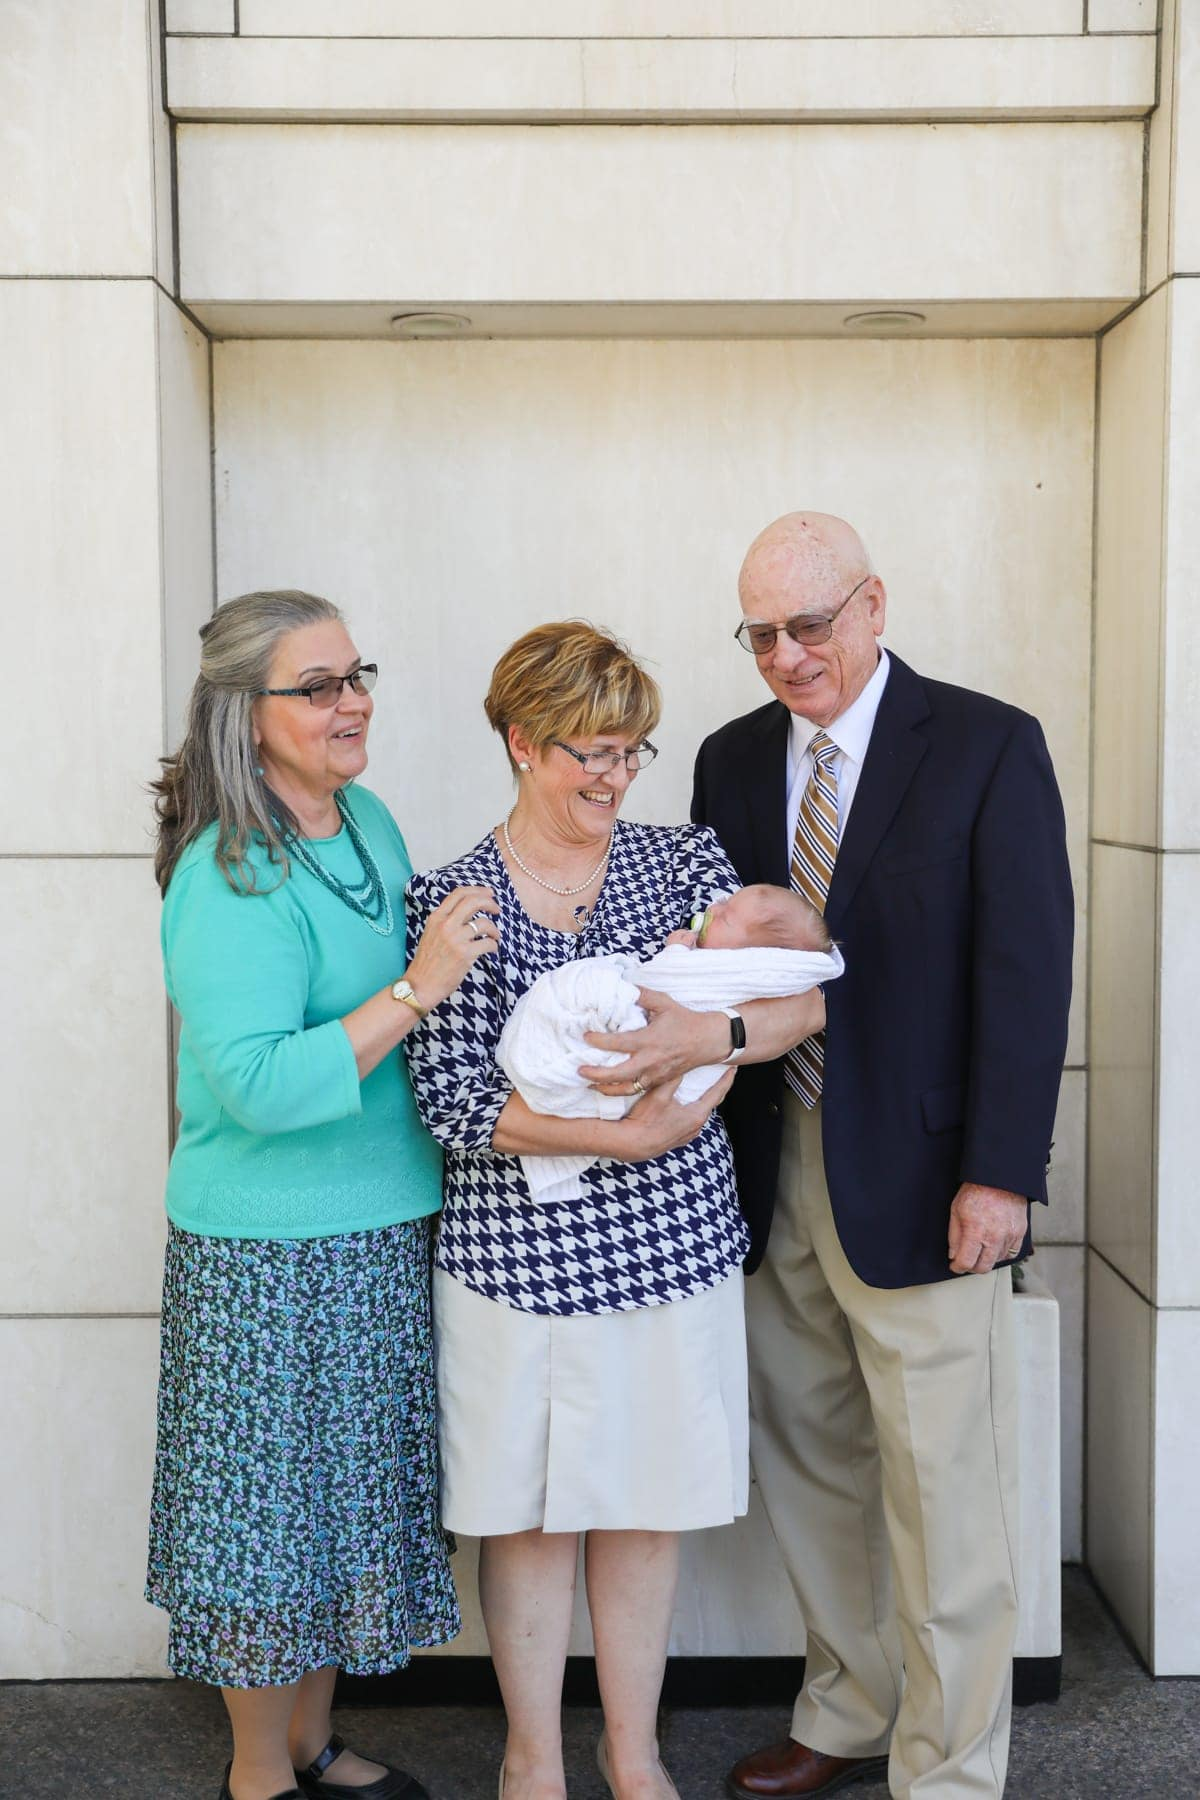 Grandparents holding Porter in front of a building